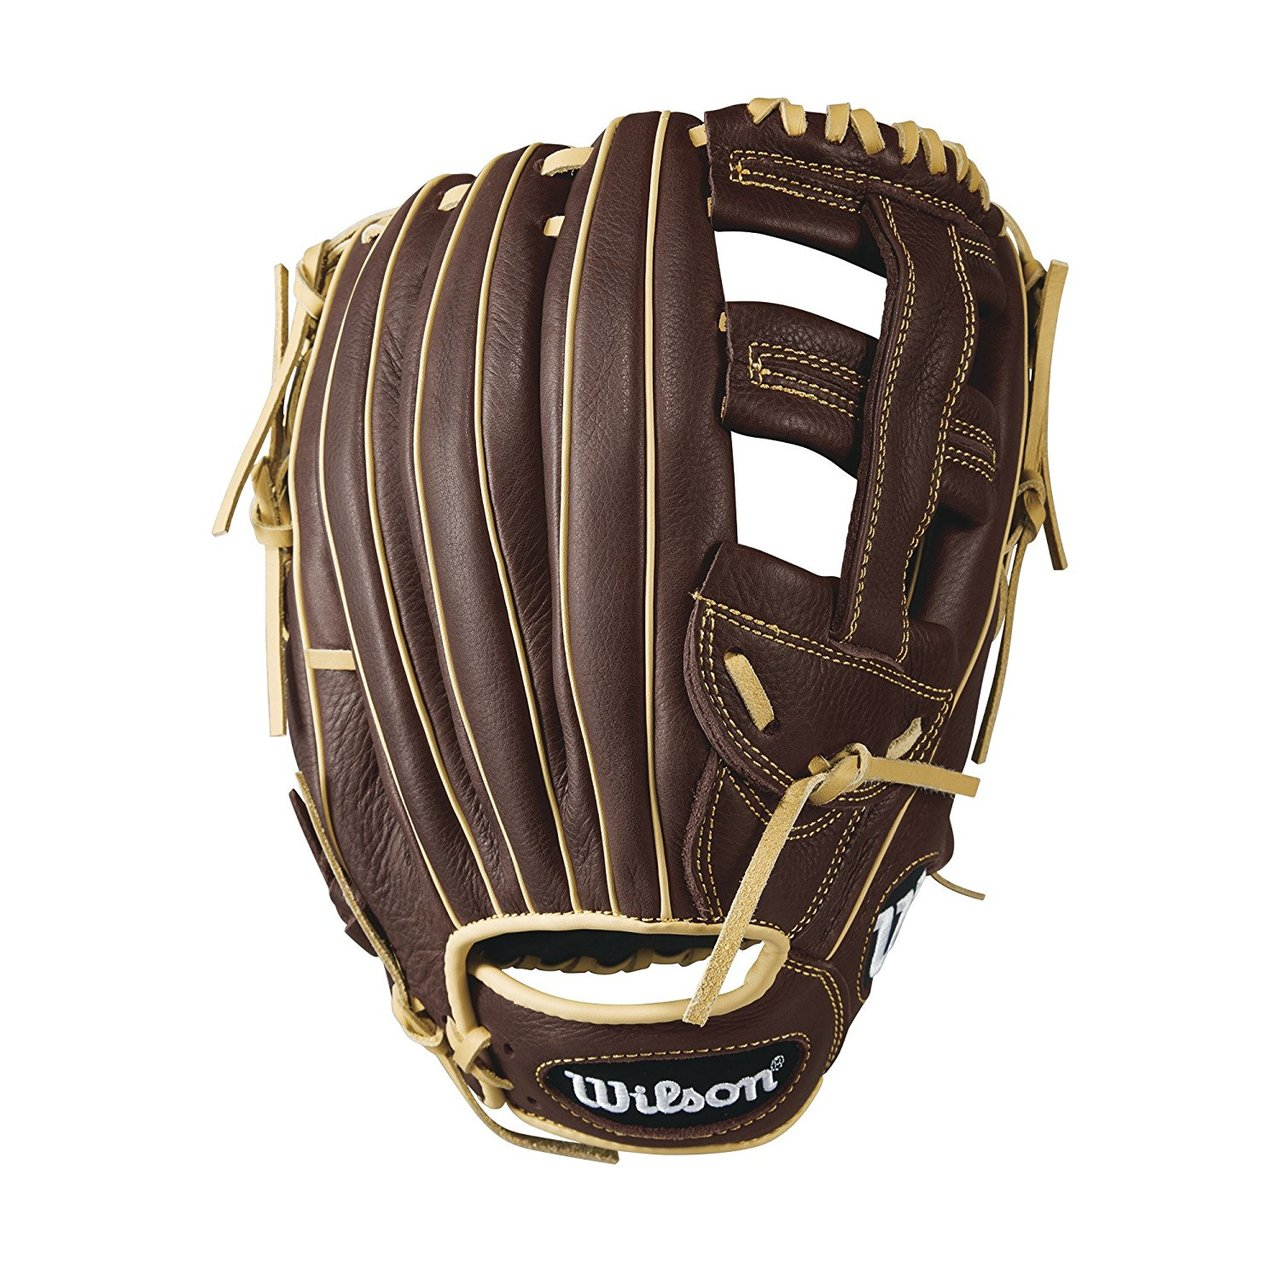 wilson-showtime-slowpitch-glove-softball-glove-13-right-hand-throw A08RS1713-RightHandThrow Wilson 887768498788 Single post web Double palm construction to reinforce the pocket Full